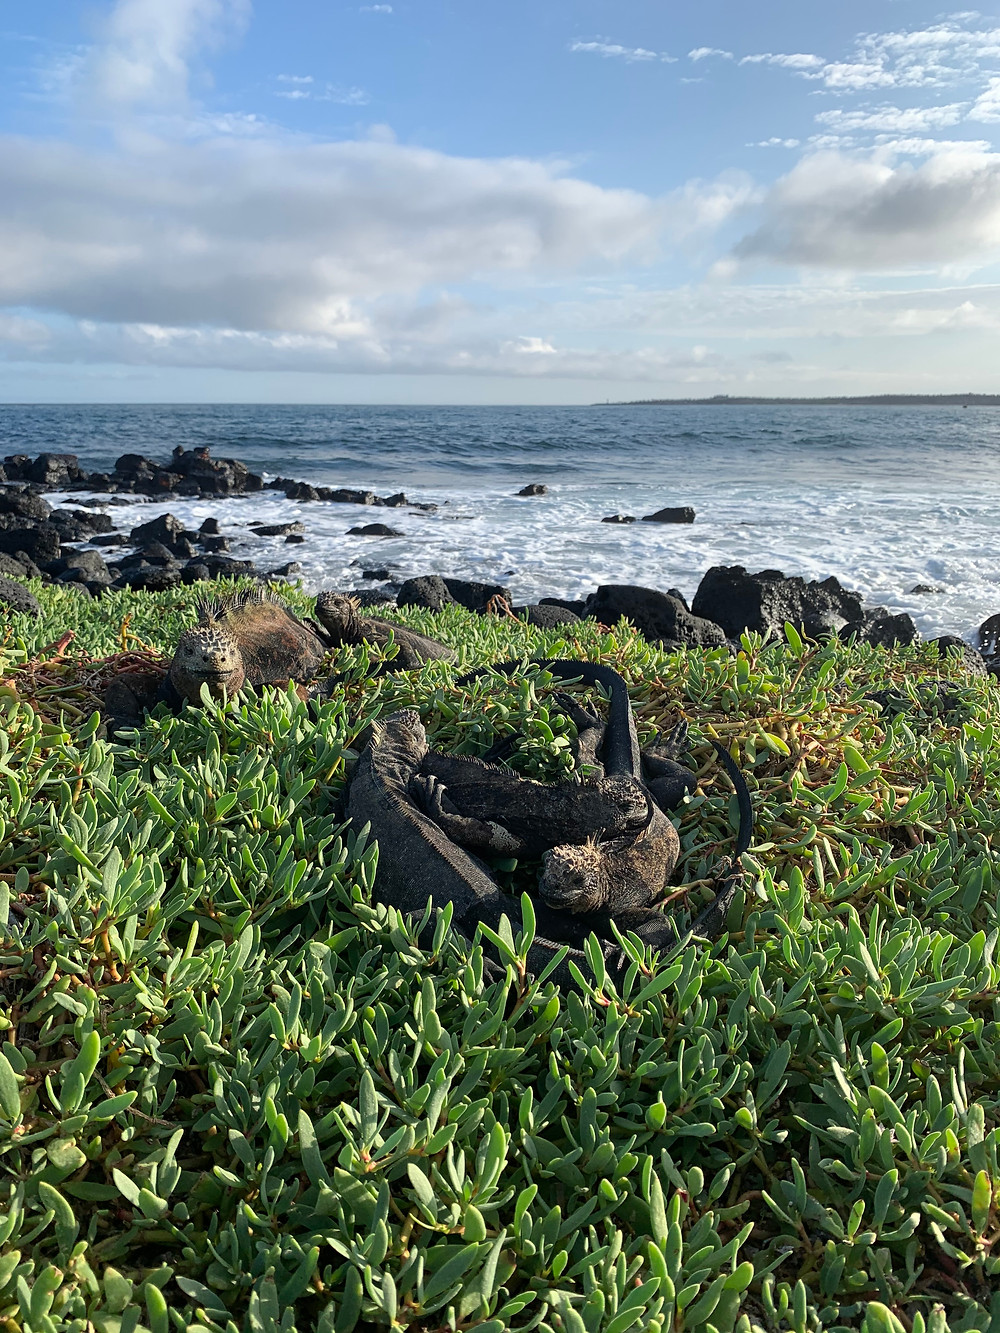 5 brown and black marine iguanas rest in greenery beside the ocean.